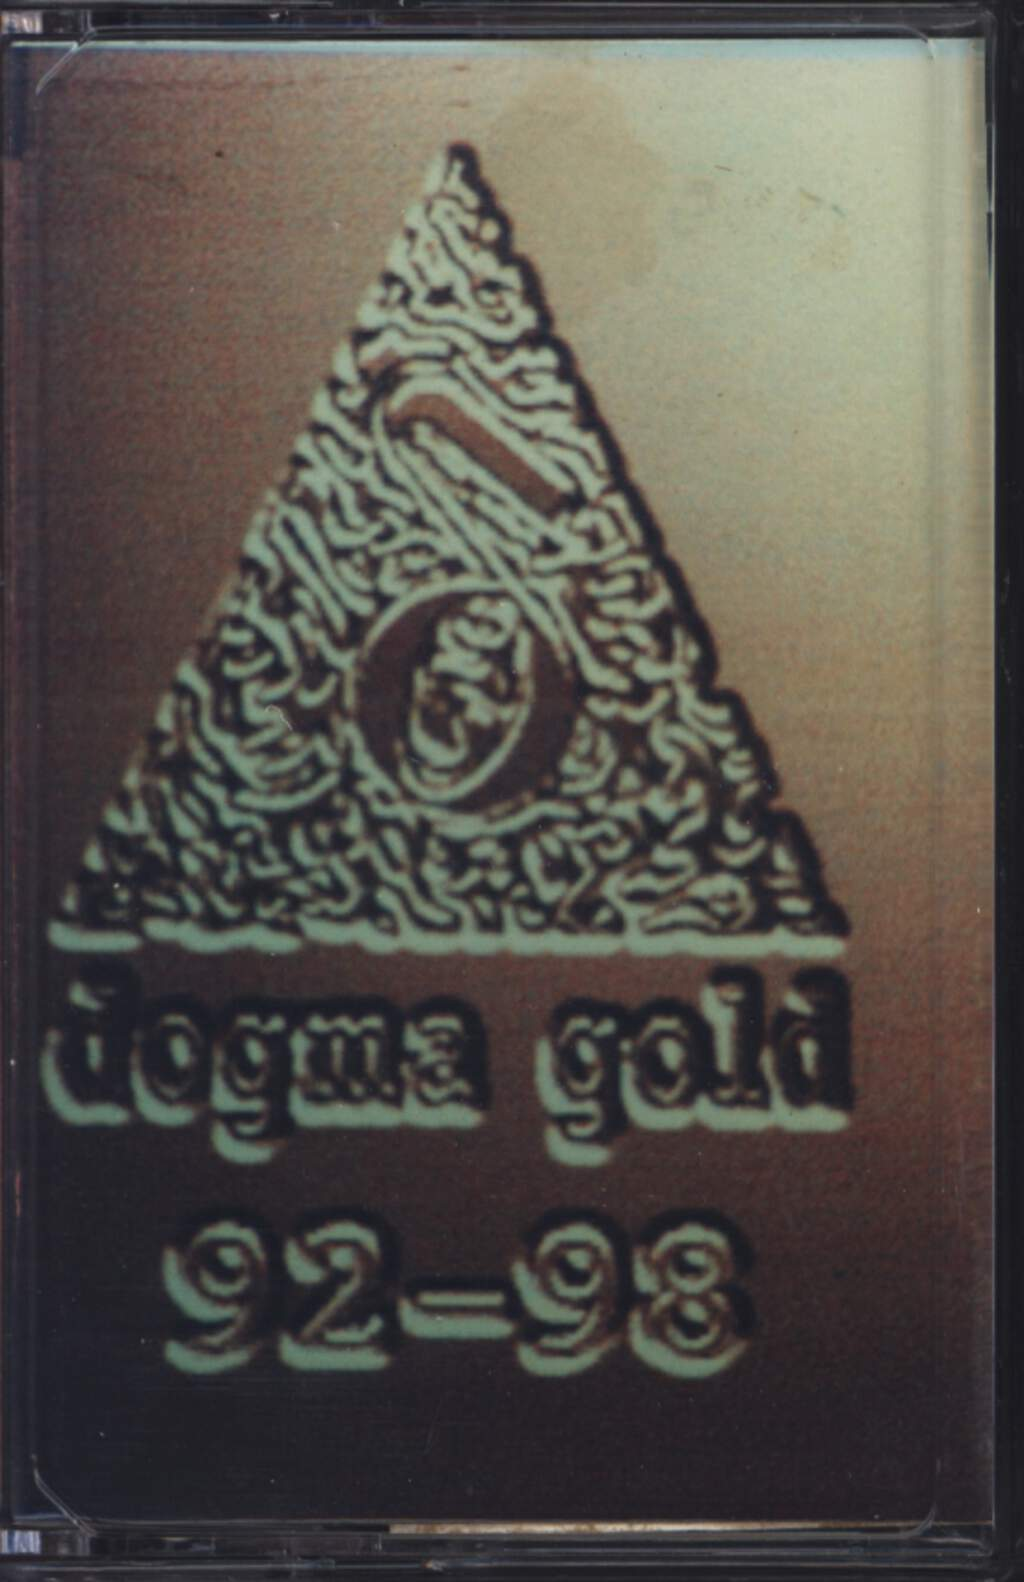 Various: Dogma Gold 92-98, Compact Cassette